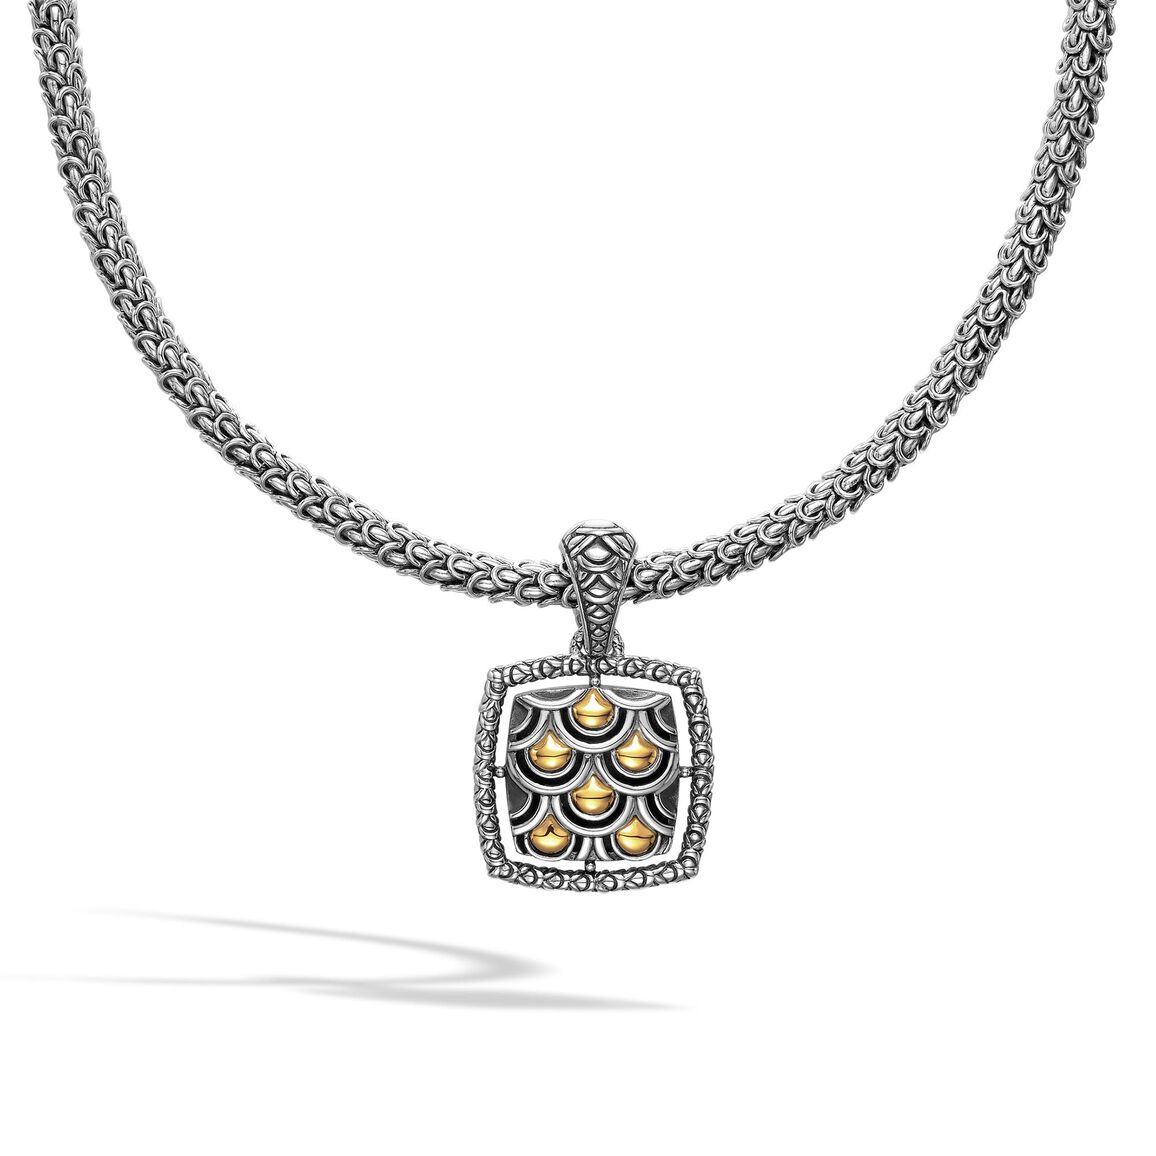 Legends Naga Pendant Necklace in Silver and 18K Gold